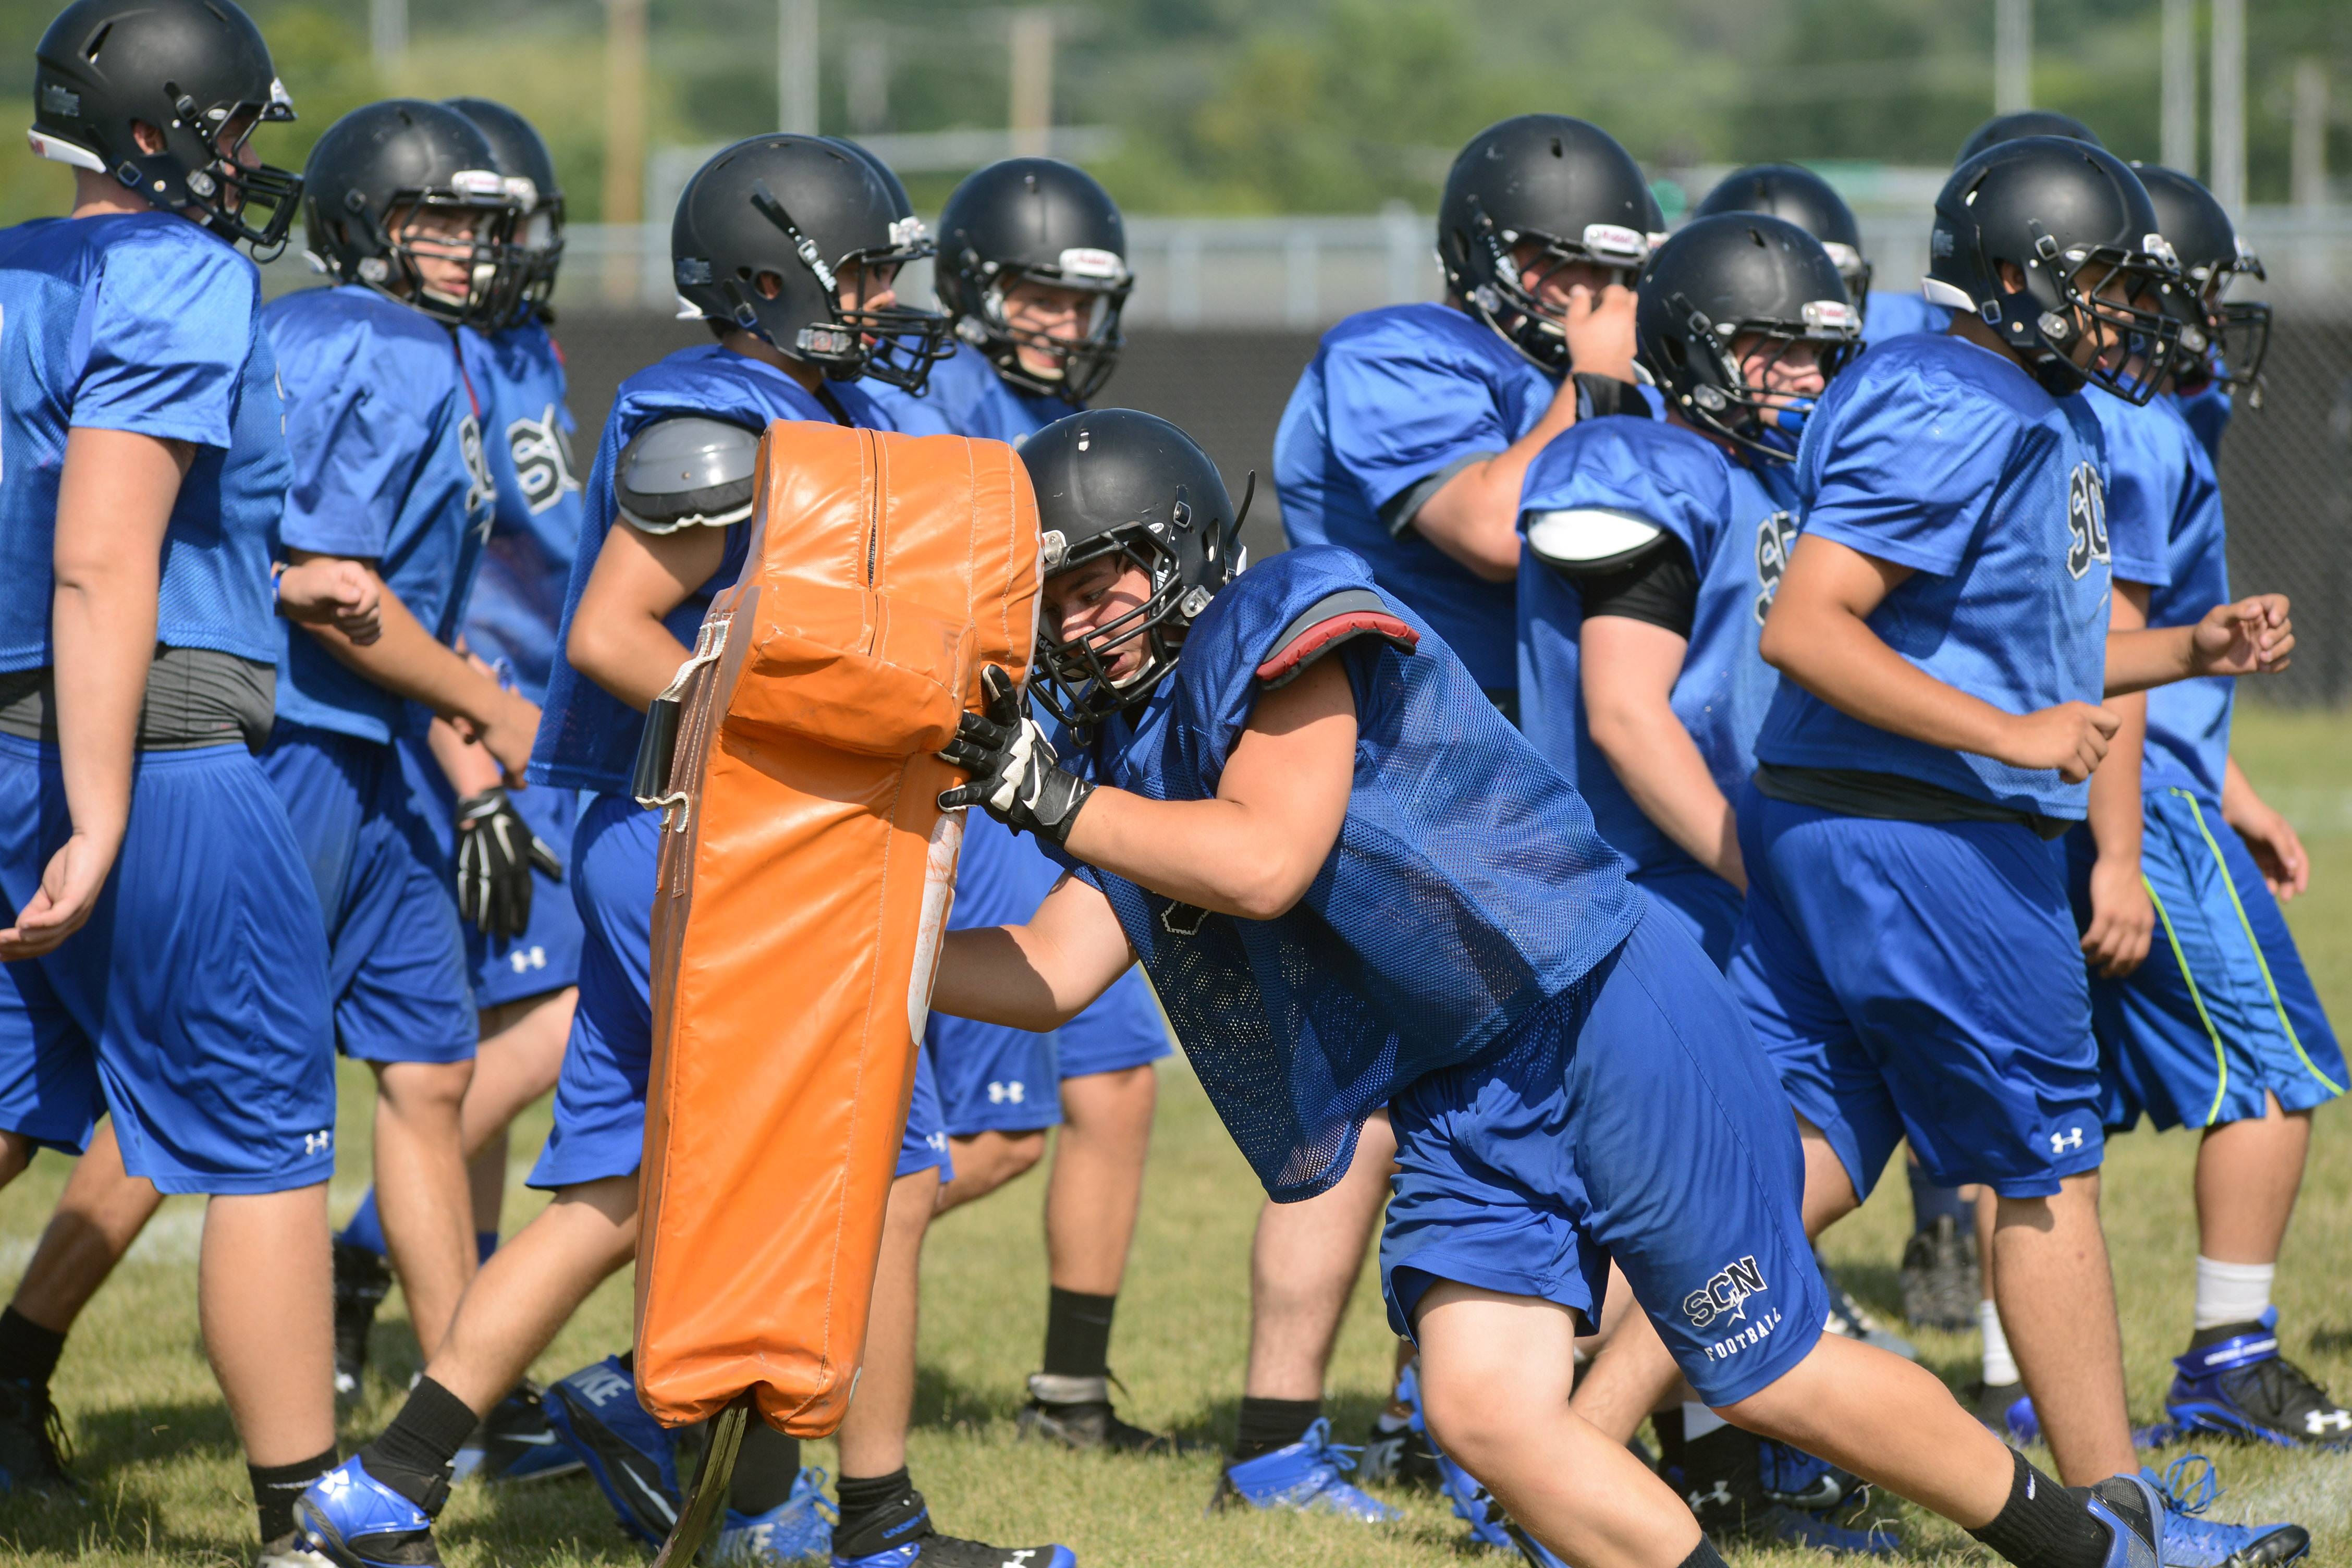 Laura Stoecker/lstoecker@dailyherald.comSt. Charles North varsity football practice hits the sleds on Friday.